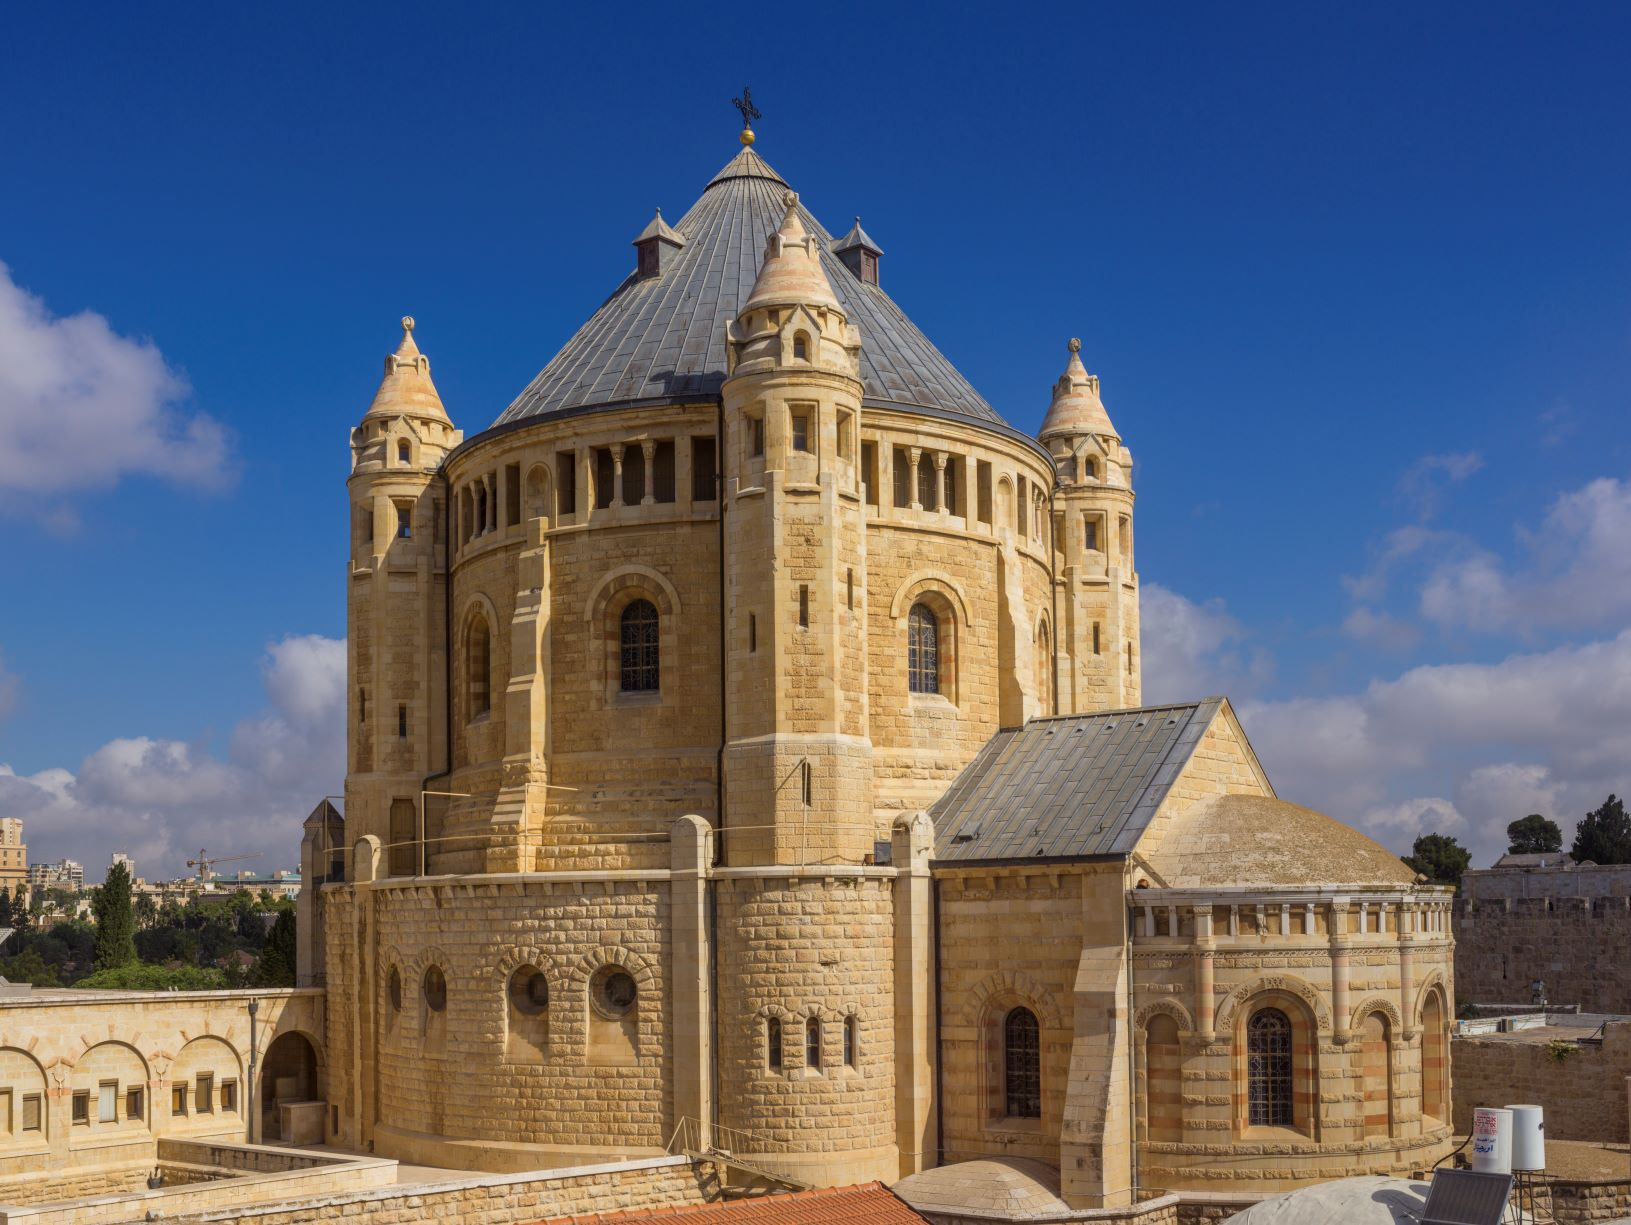 Dormition Abbey in Jerusalem, said to be the site of the Assumption